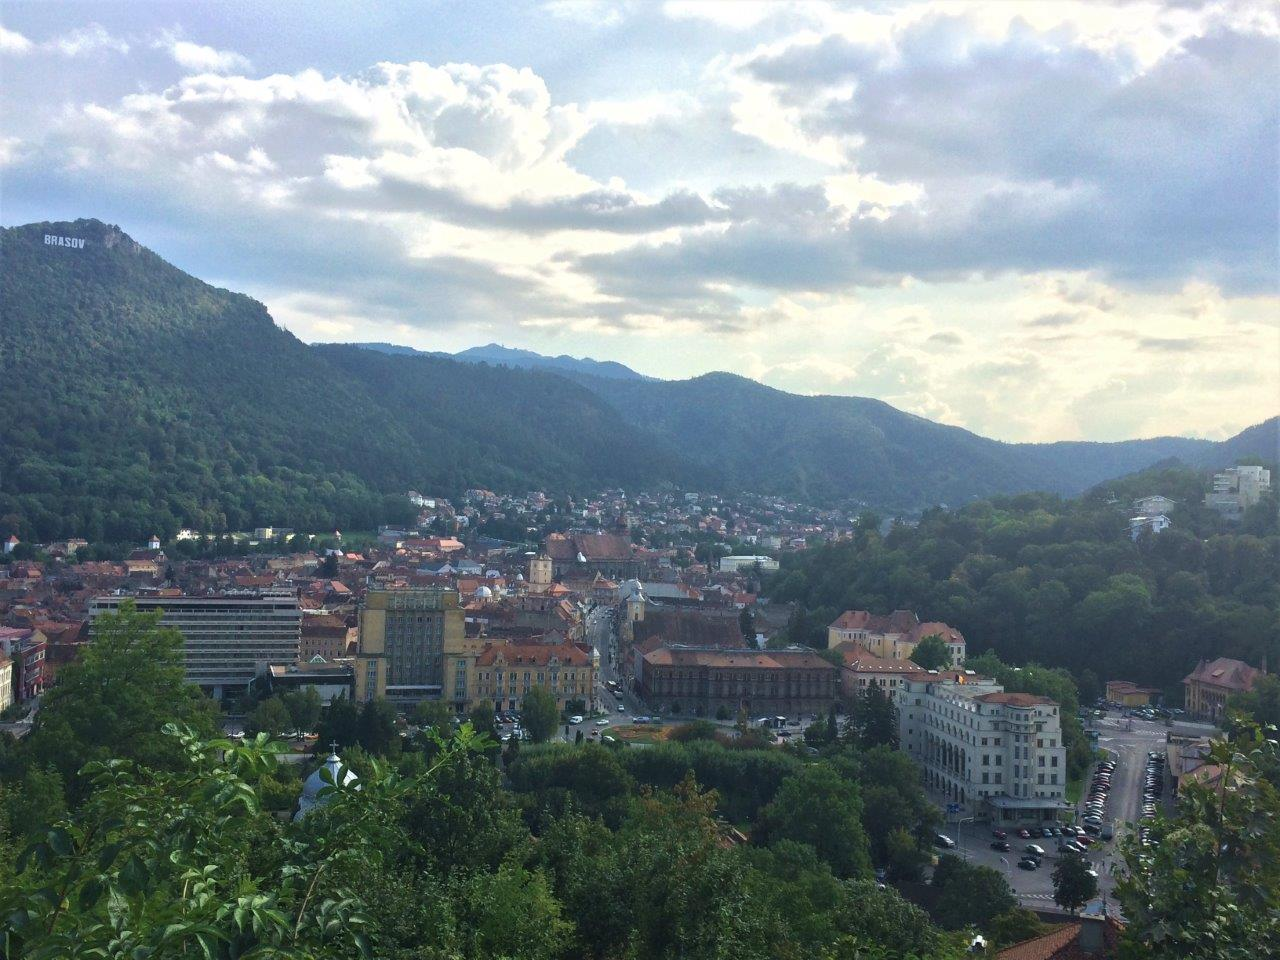 The view over Brasov Romania from the fortress